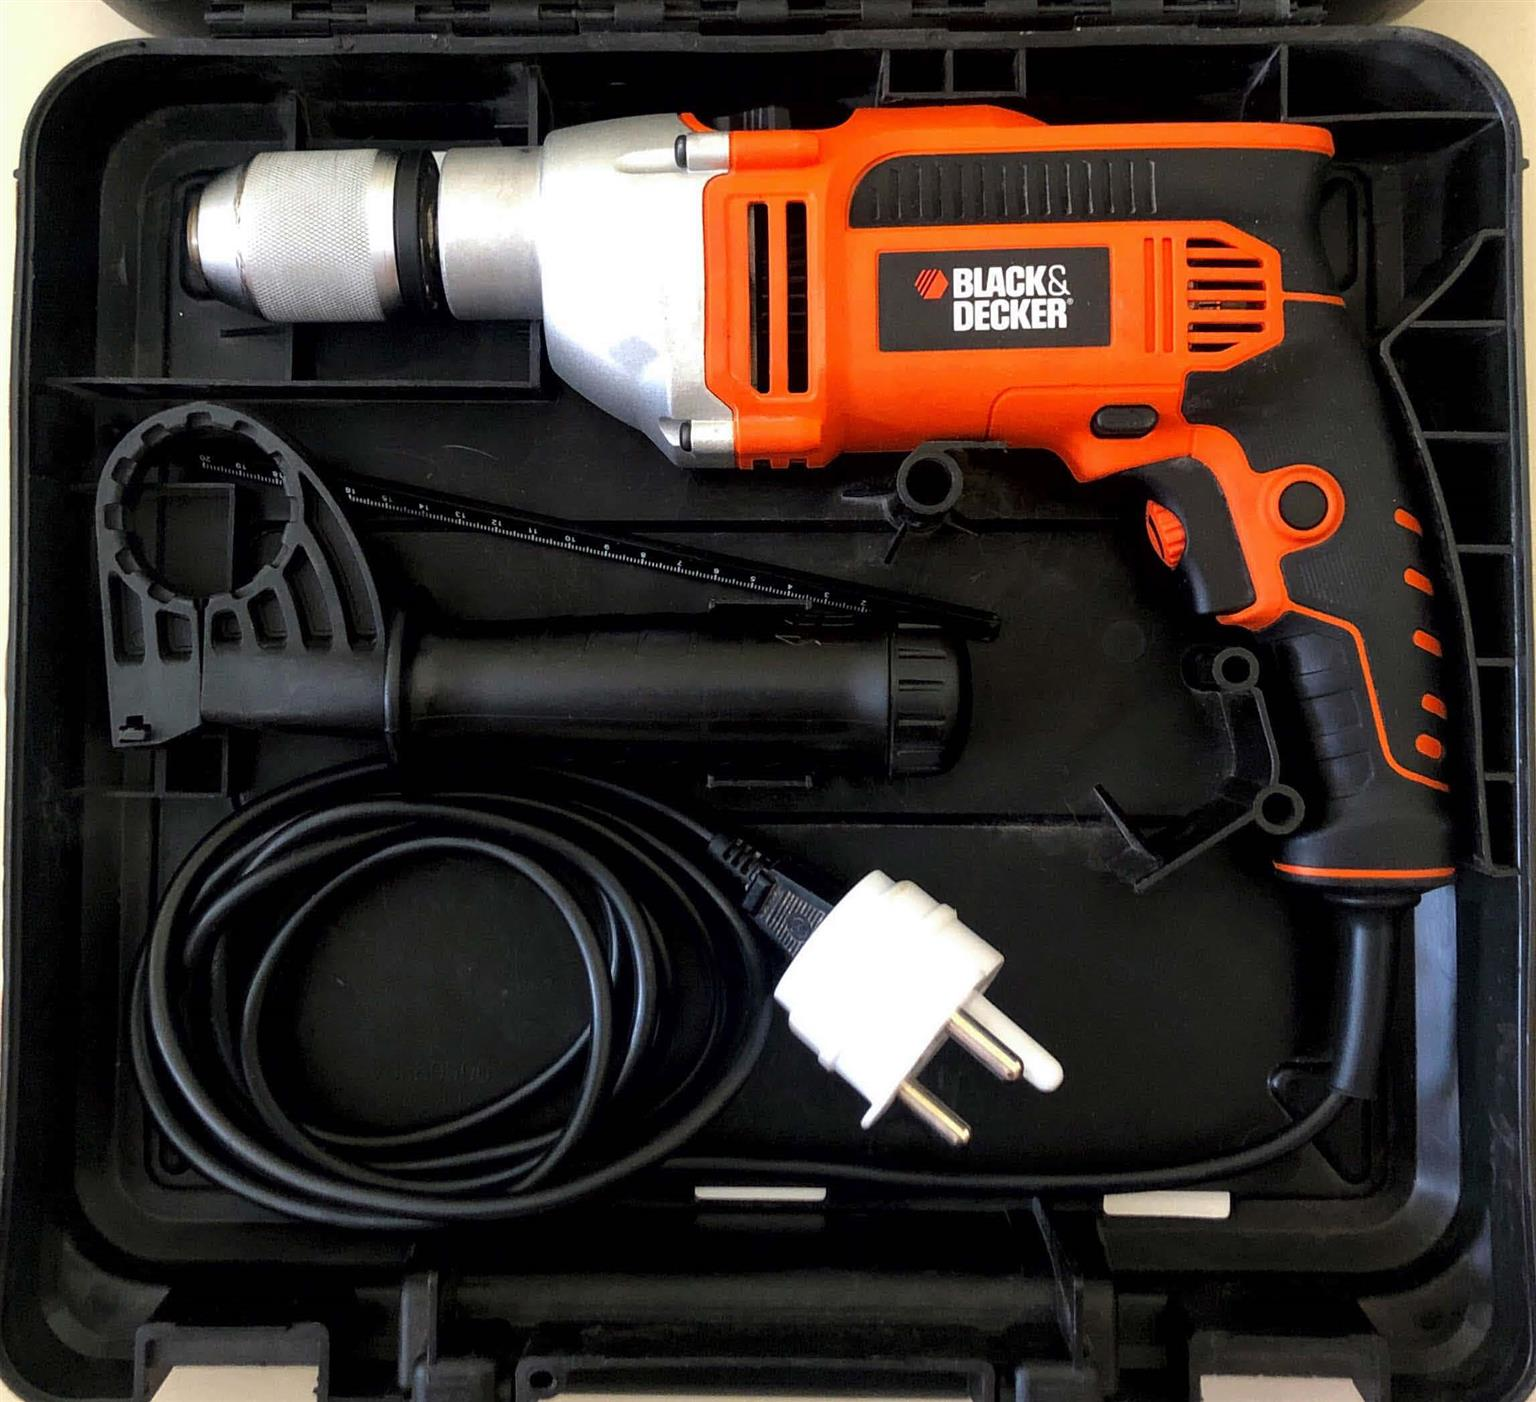 Black & Decker 1000W Hammer Drill with 13mm Keyless Chuck